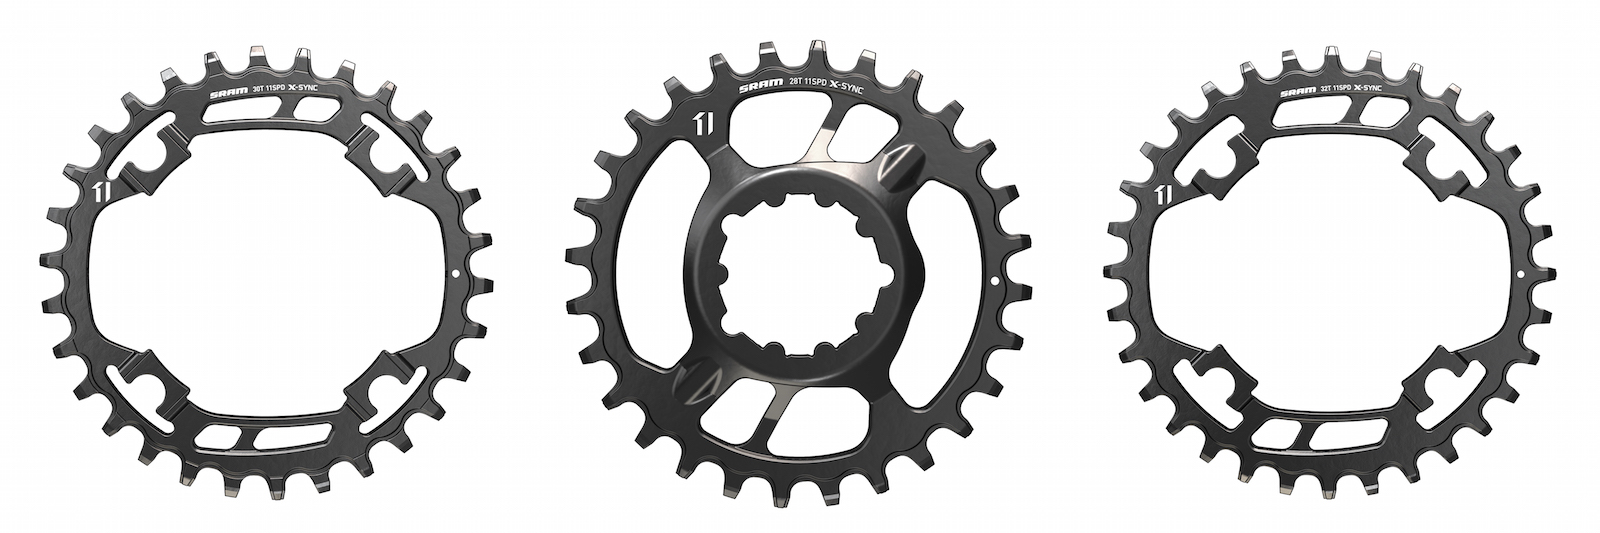 SRAM_MTB_Steel_Chainring_32t_Side_M copia